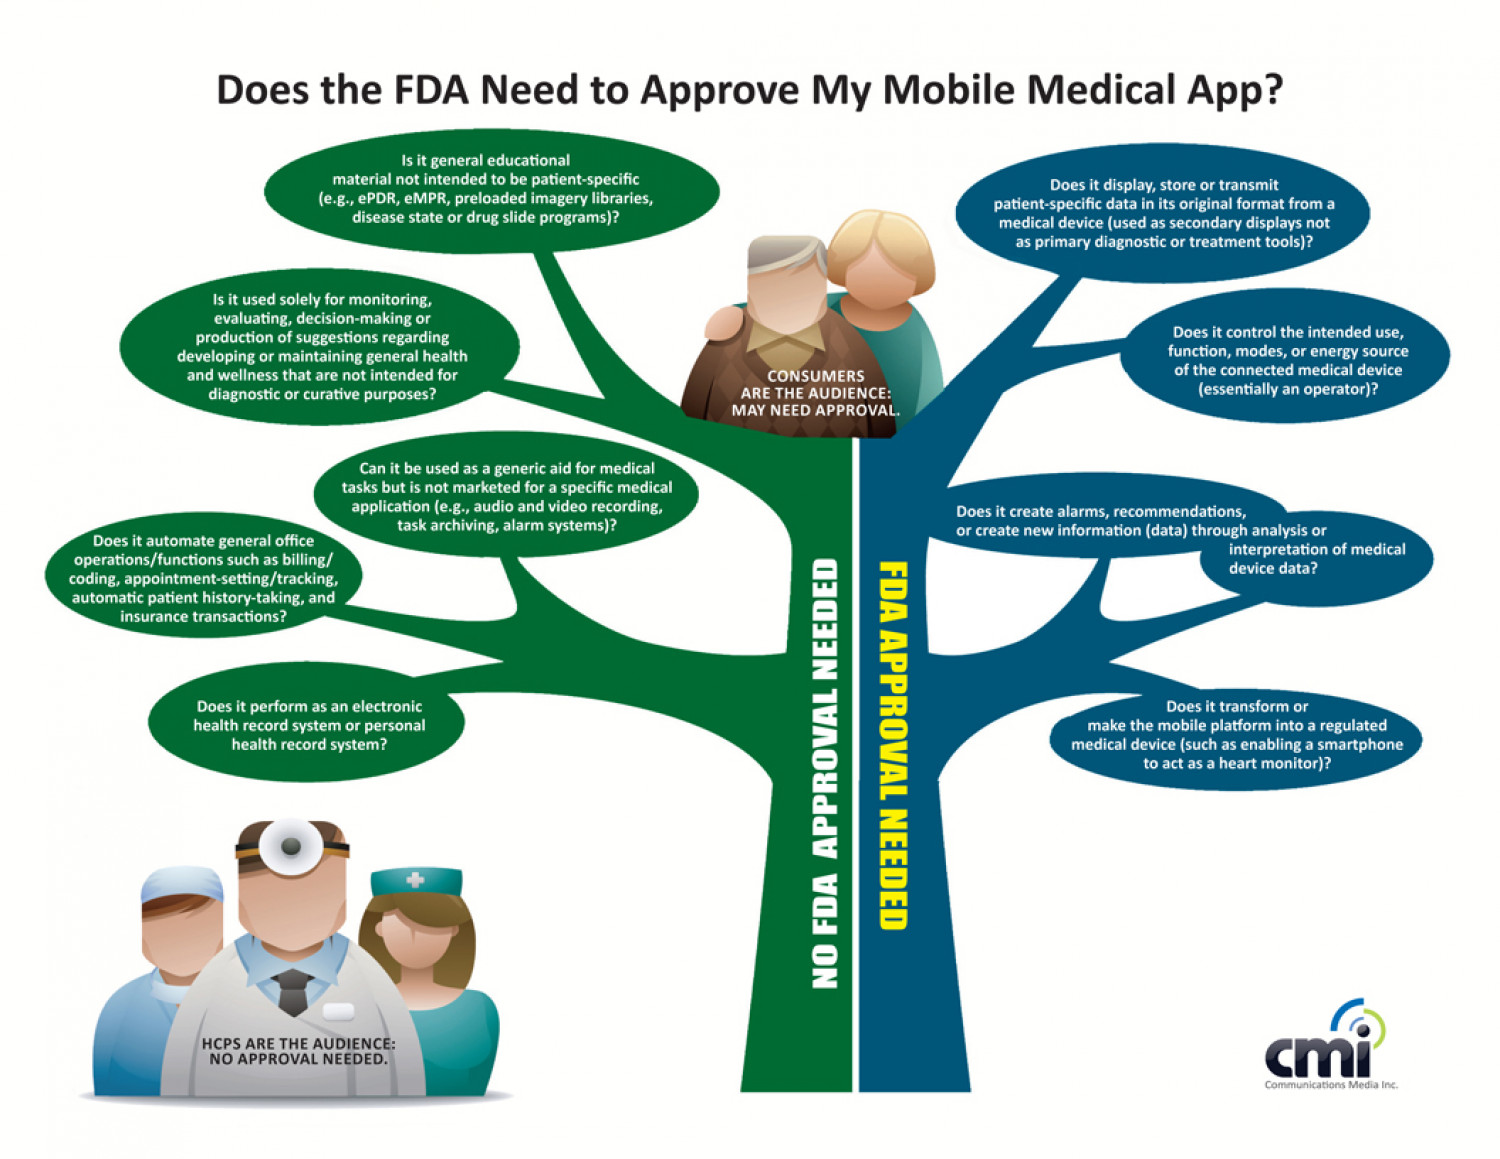 Does FDA Need to Approve My Mobile Medical App? Infographic